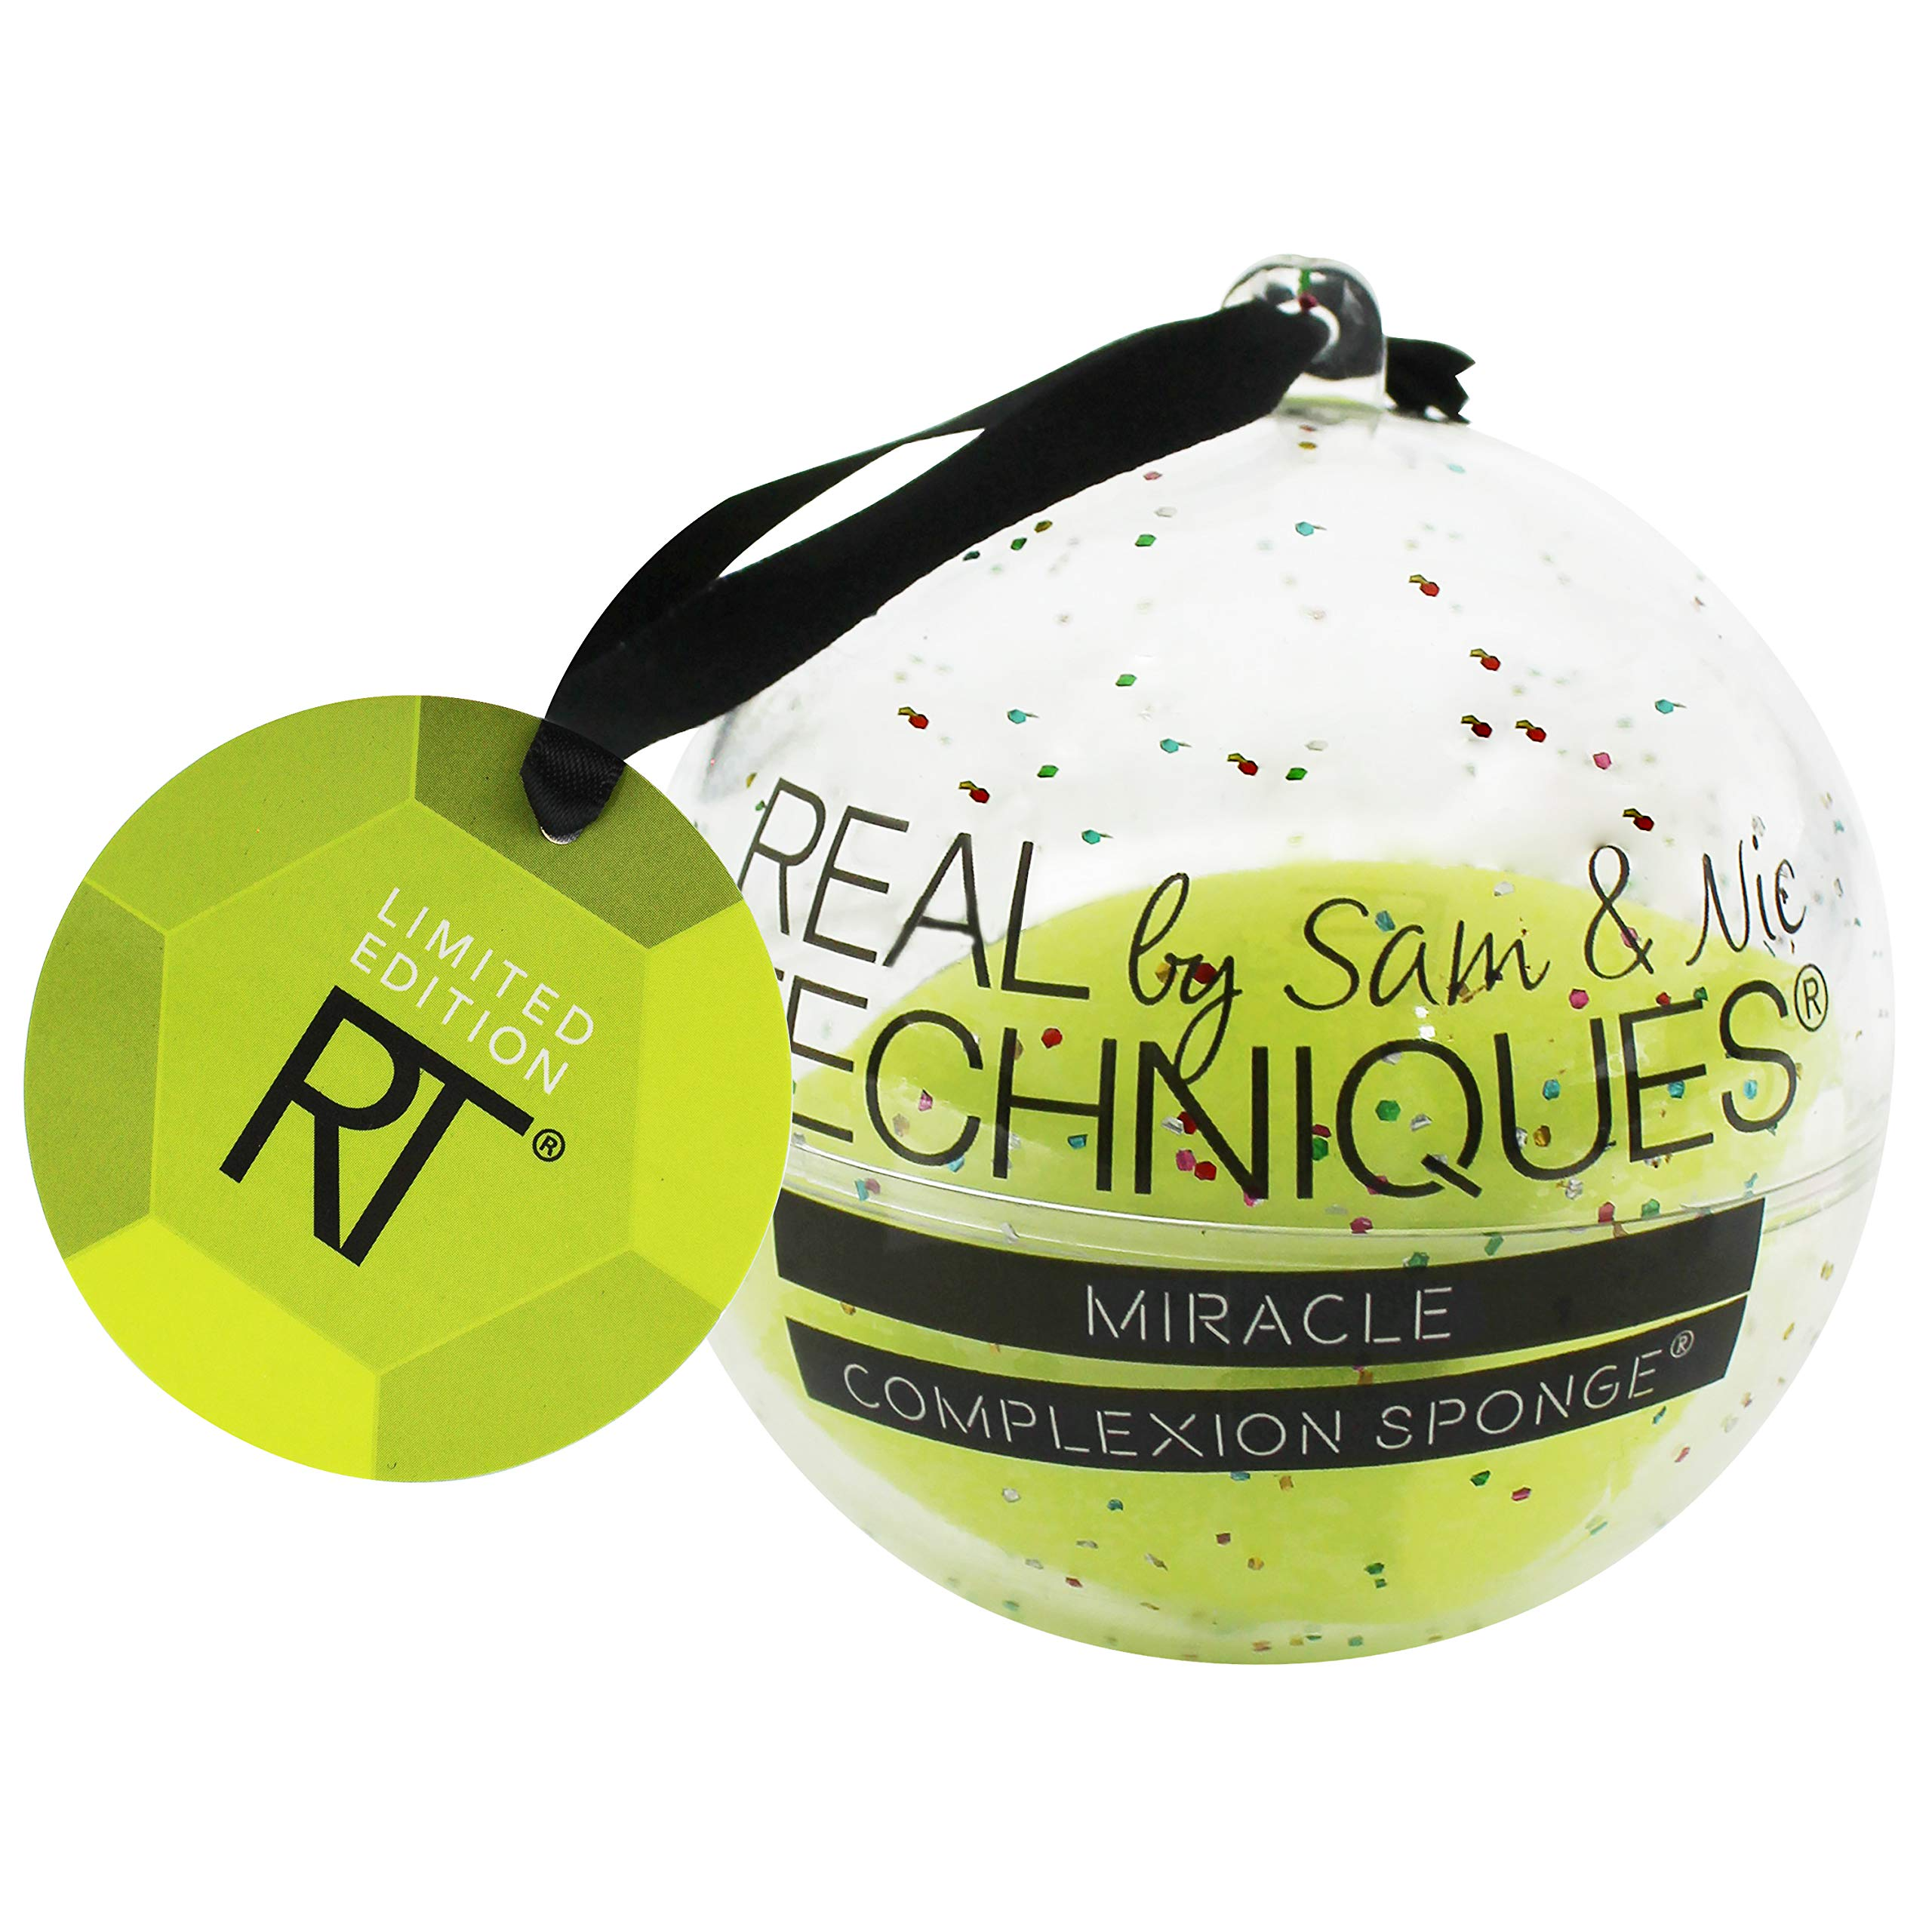 Real Techniques Miracle Complexion Sponge Ornament Cosmetics Sponge for Blending, Ideal For Holiday Gifts (Pack of 1)